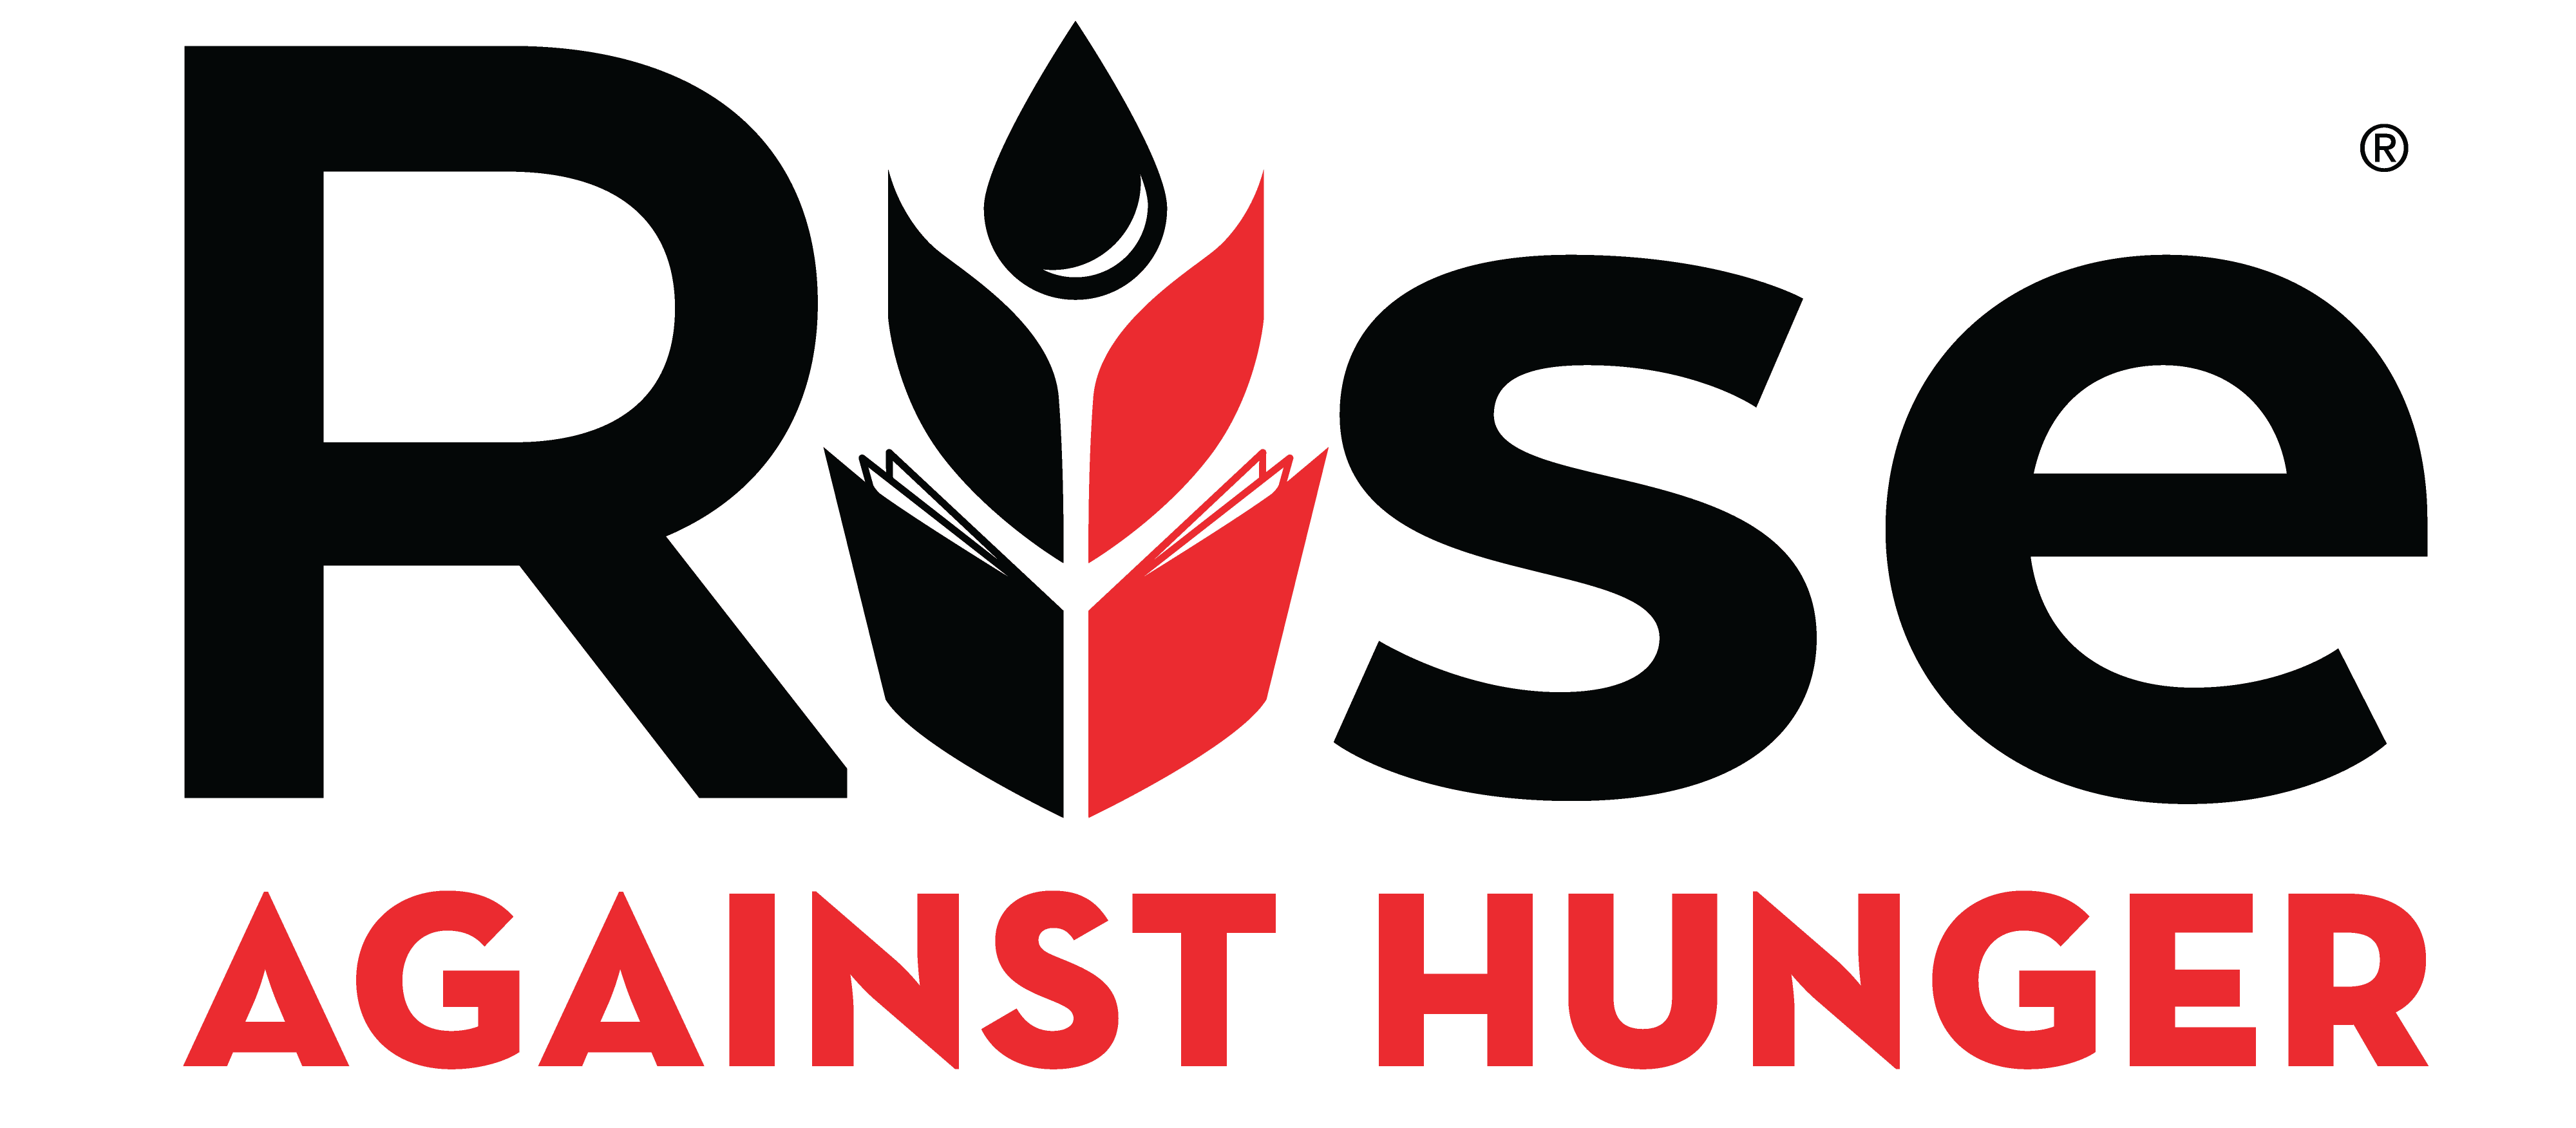 Rise Against Hunter